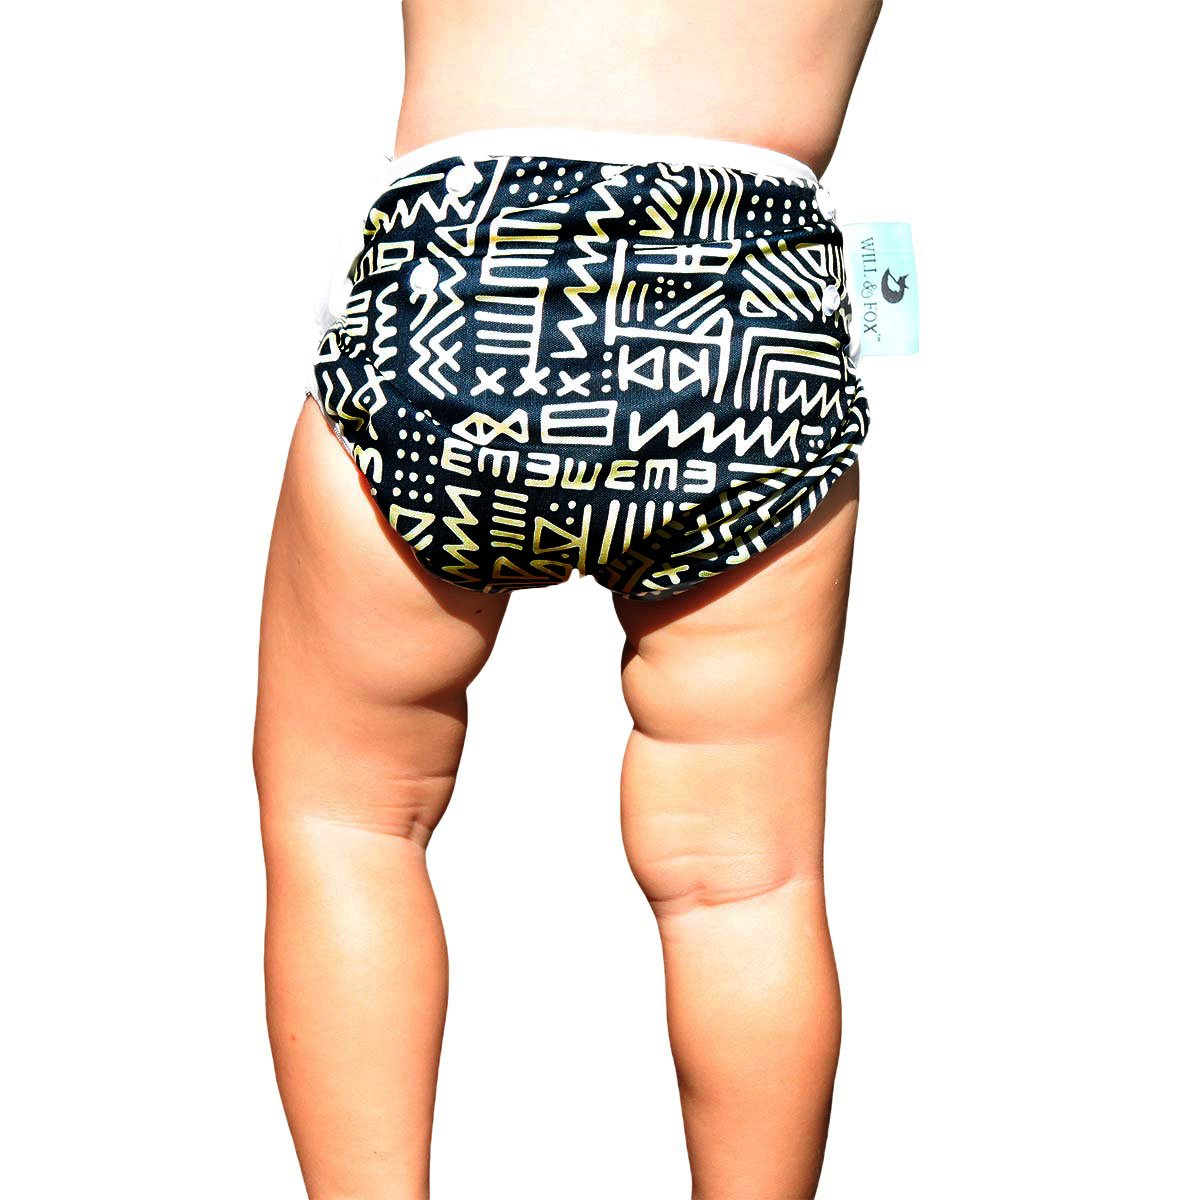 Premium Reusable Swim Diaper for Baby & Toddlers Girls & Boys Unisex ~Adjusts Size N - 5 (0-36lbs) Check Out Our Huge Trendy Range Be The Most Stylish and Well Protected Infant at The Pool or Beach!